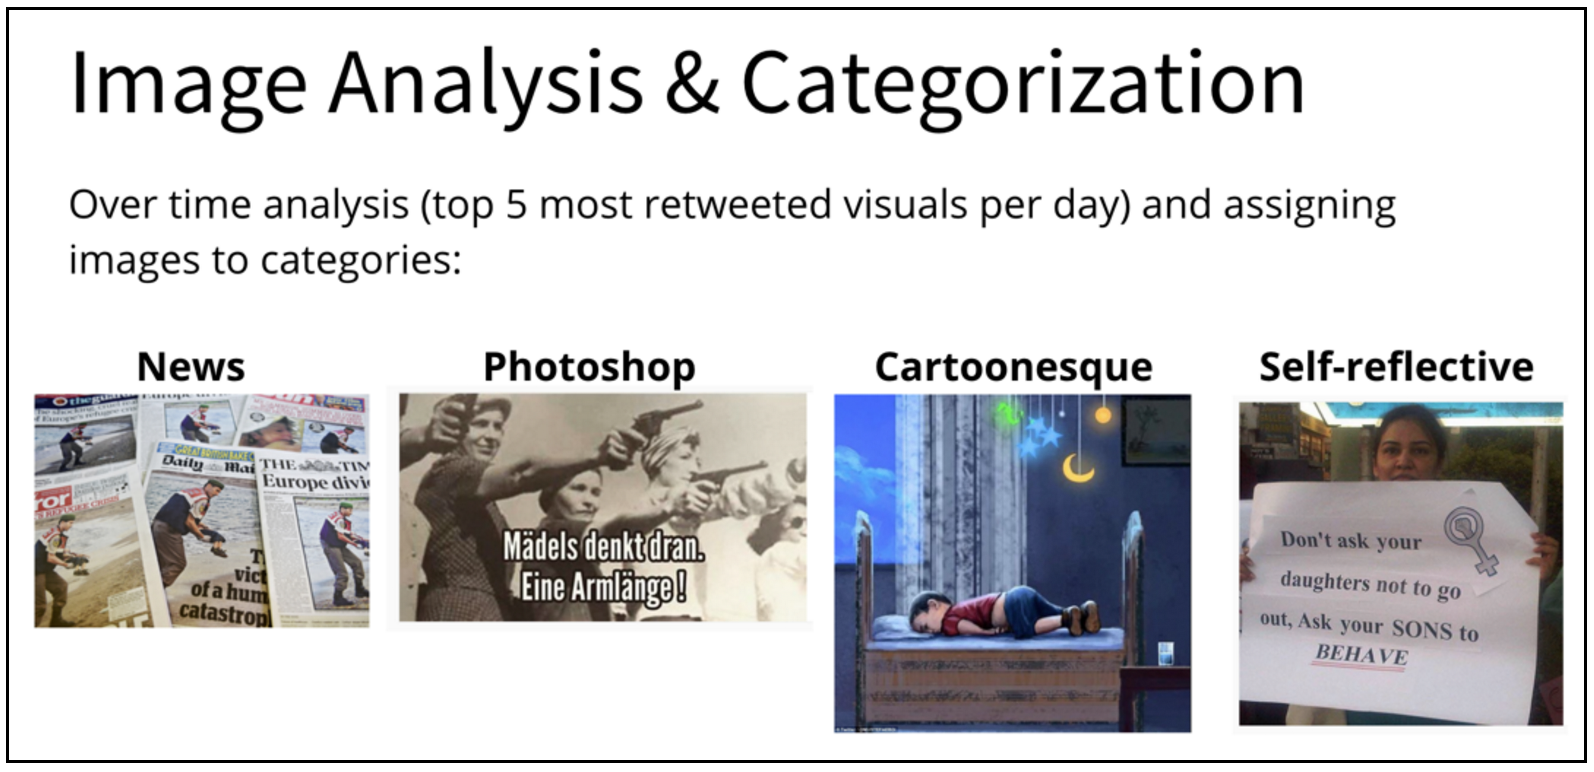 03-image-analysis-and-categorization.png